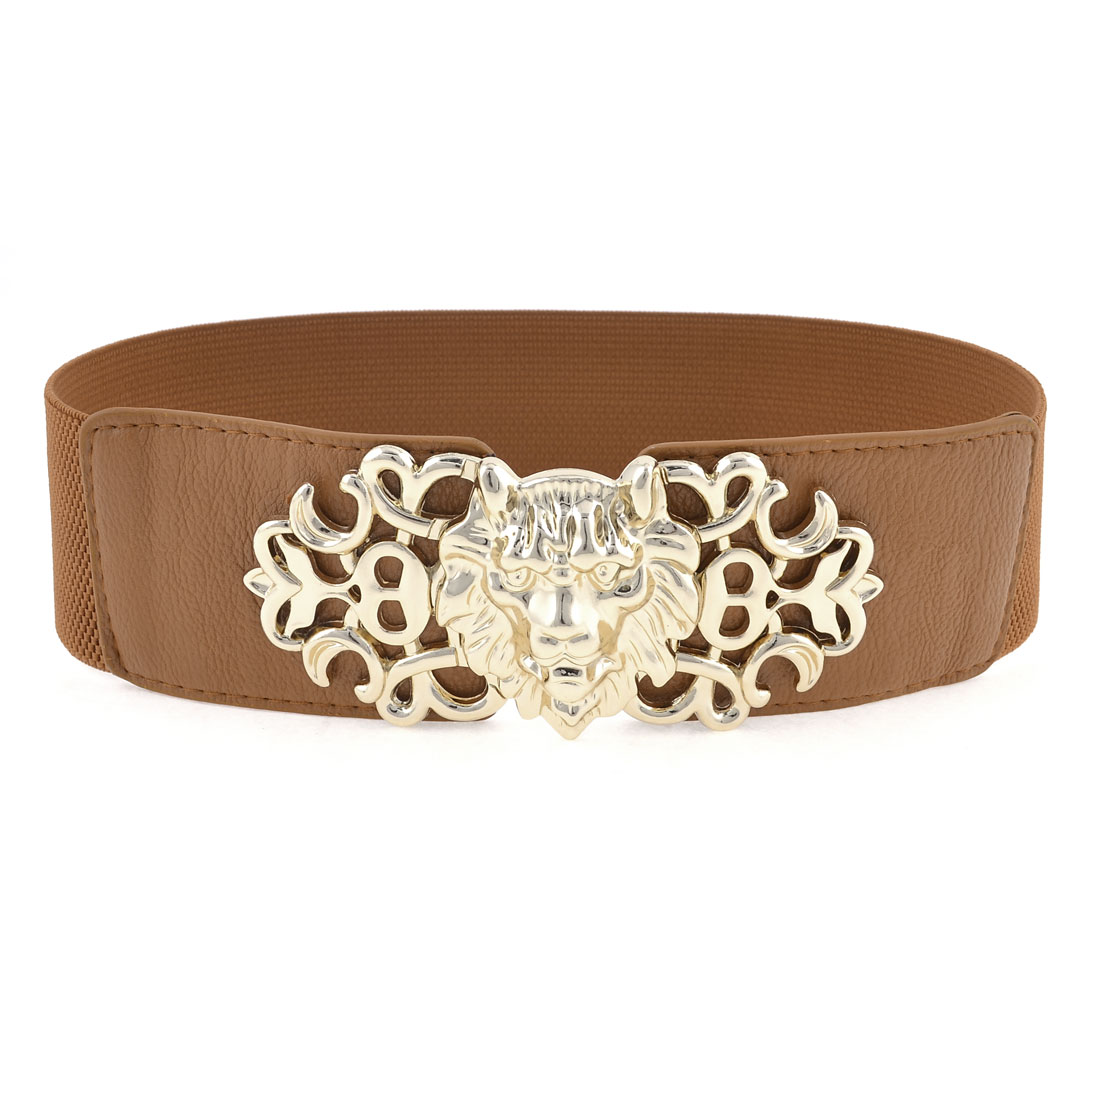 Lady Brown Lion Design Interlocking Buckle Stretchy Cinch Waist Belt